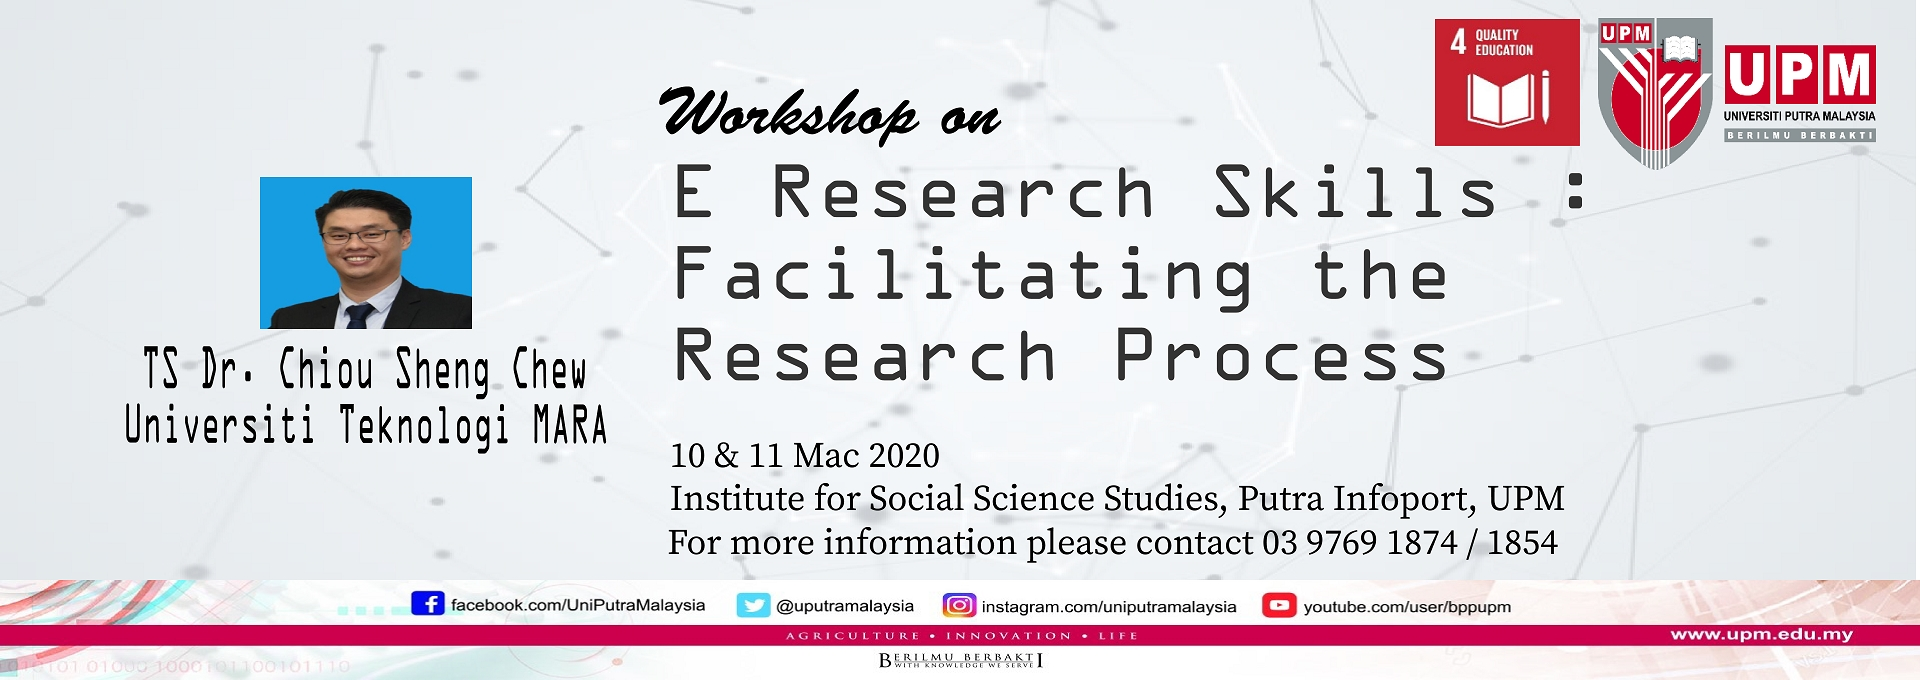 e-Research Skills - Facilitating the Research Process